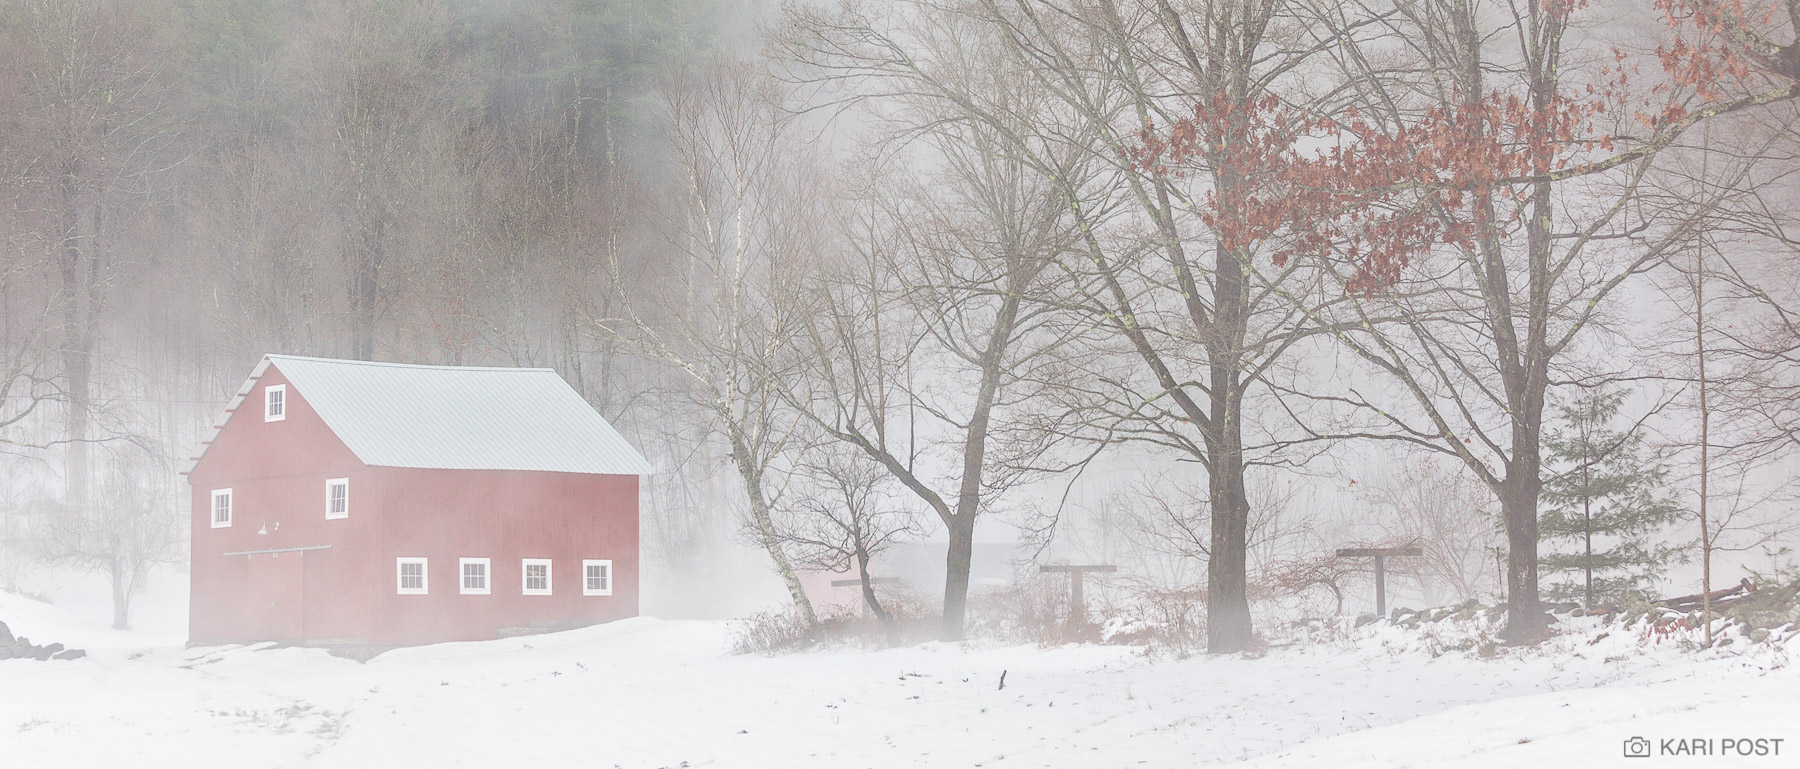 Fog shrouds a barn and trees as unseasonably warm temperatures cause the snow to melt in this rural New England winter scene.